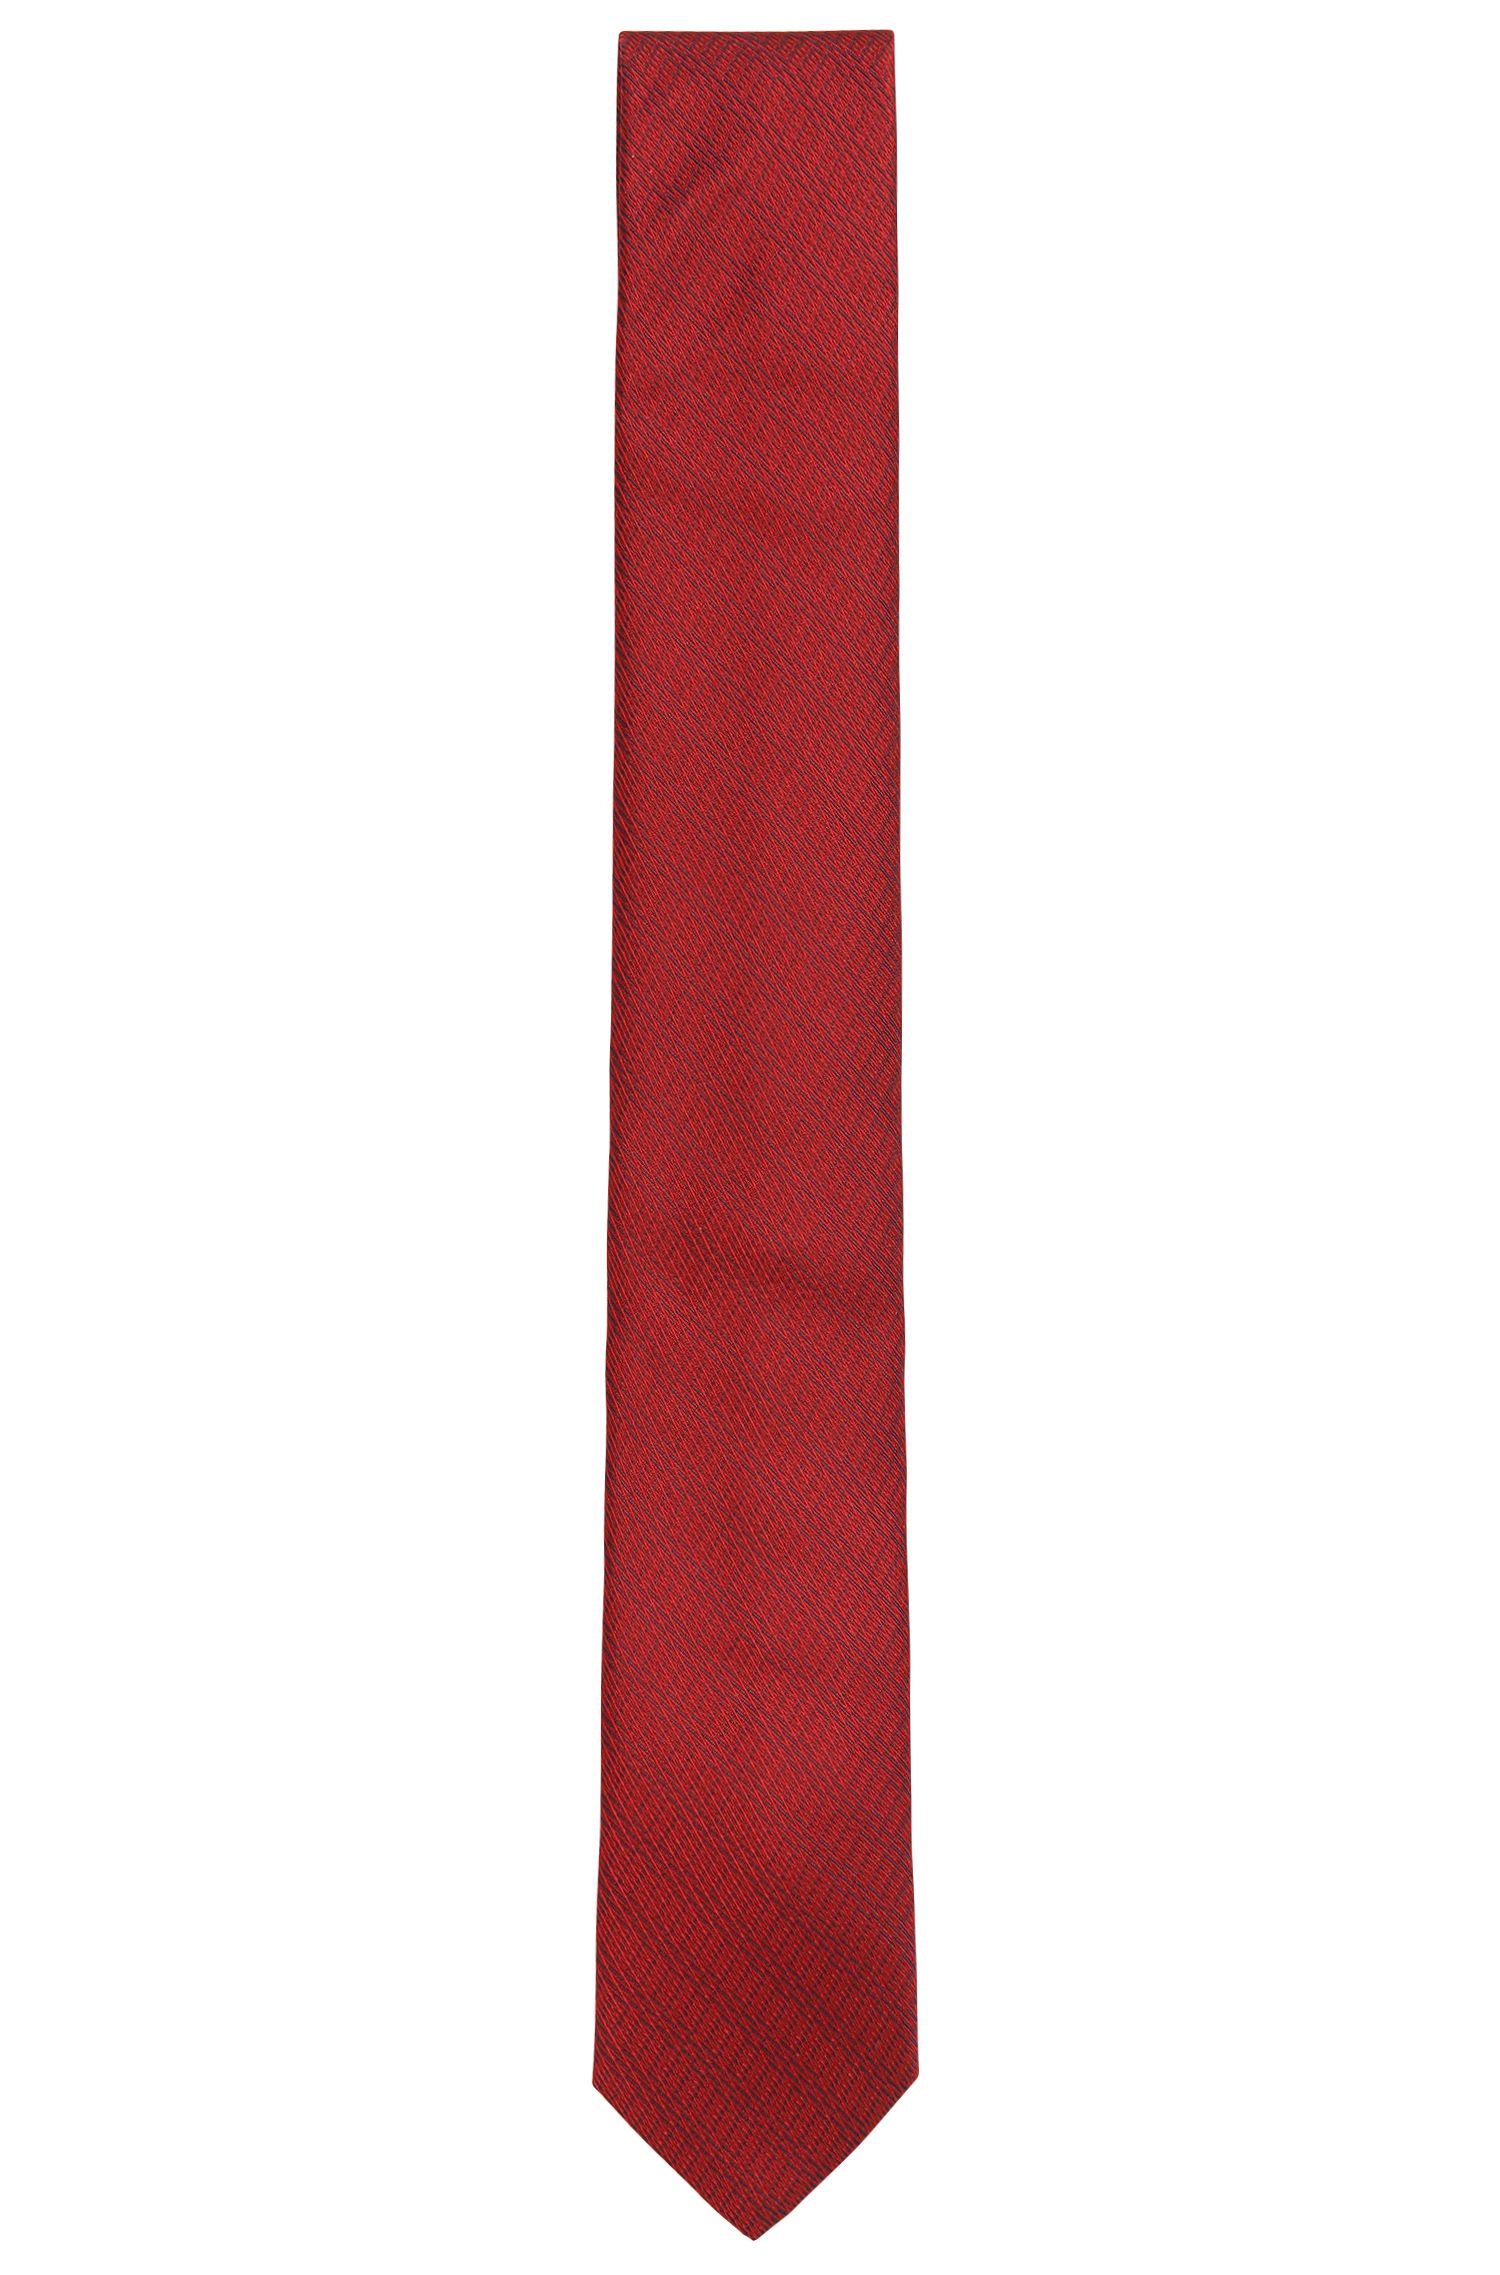 Silk jacquard tie with detailed structure